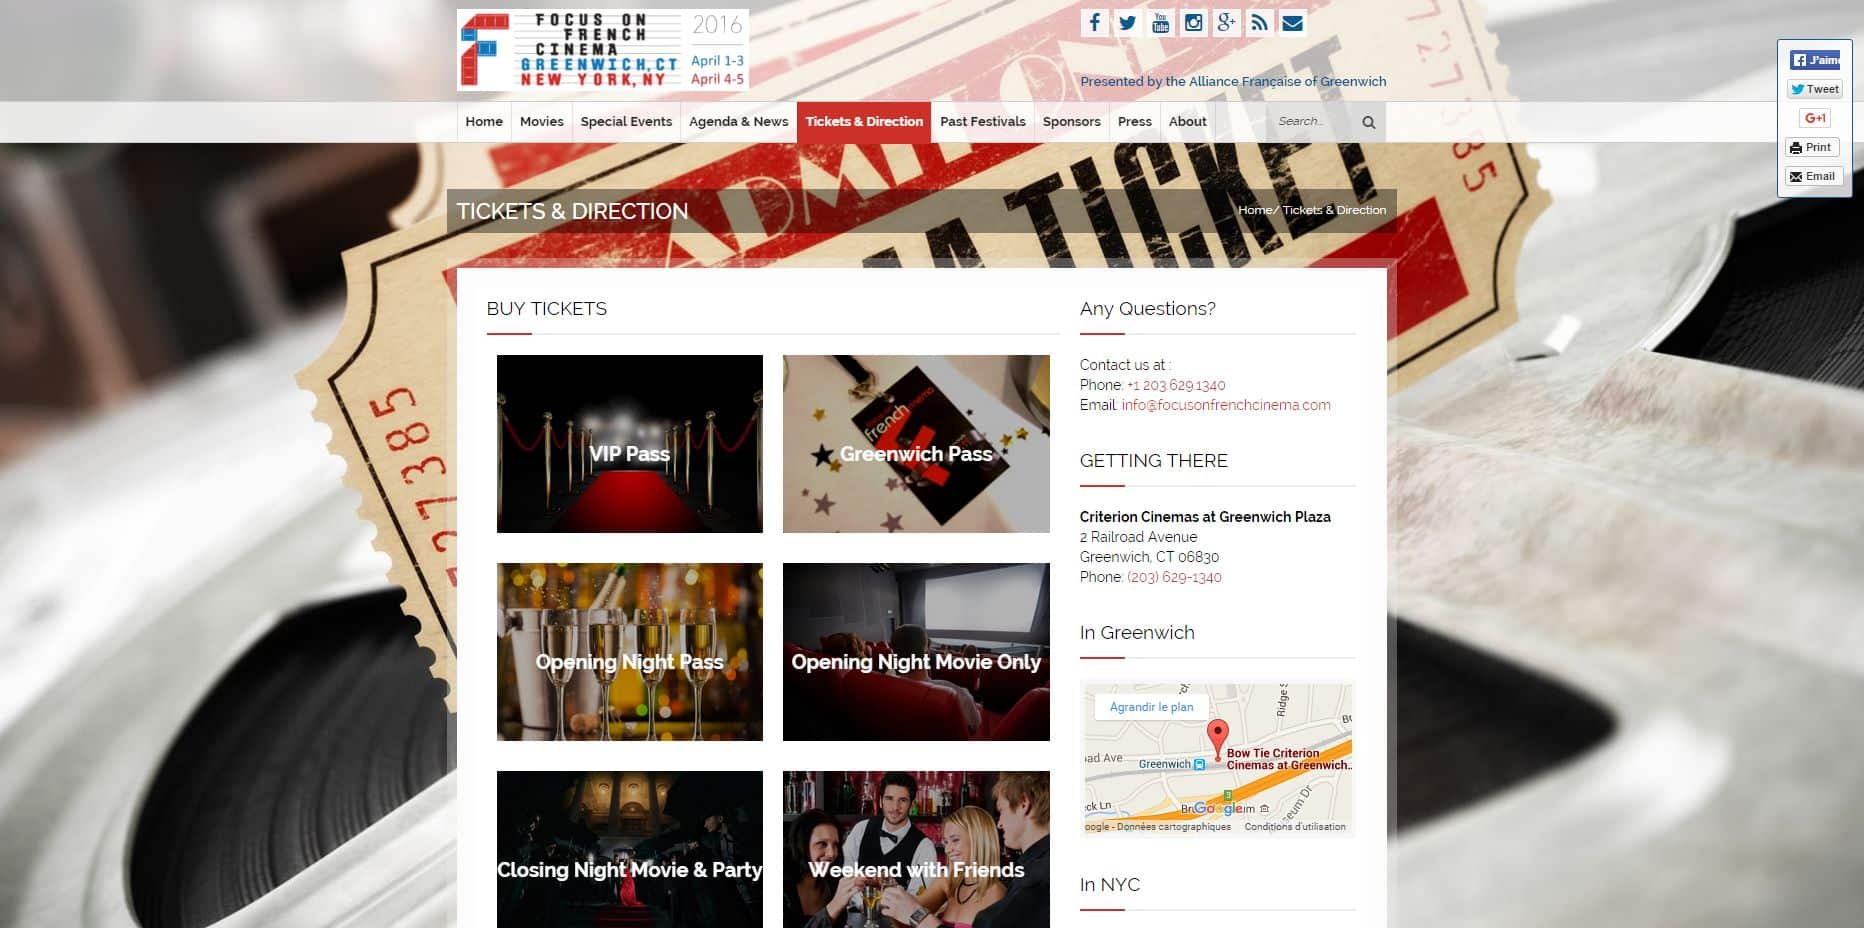 conception-web-montreal-focus-on-french-cinema-9